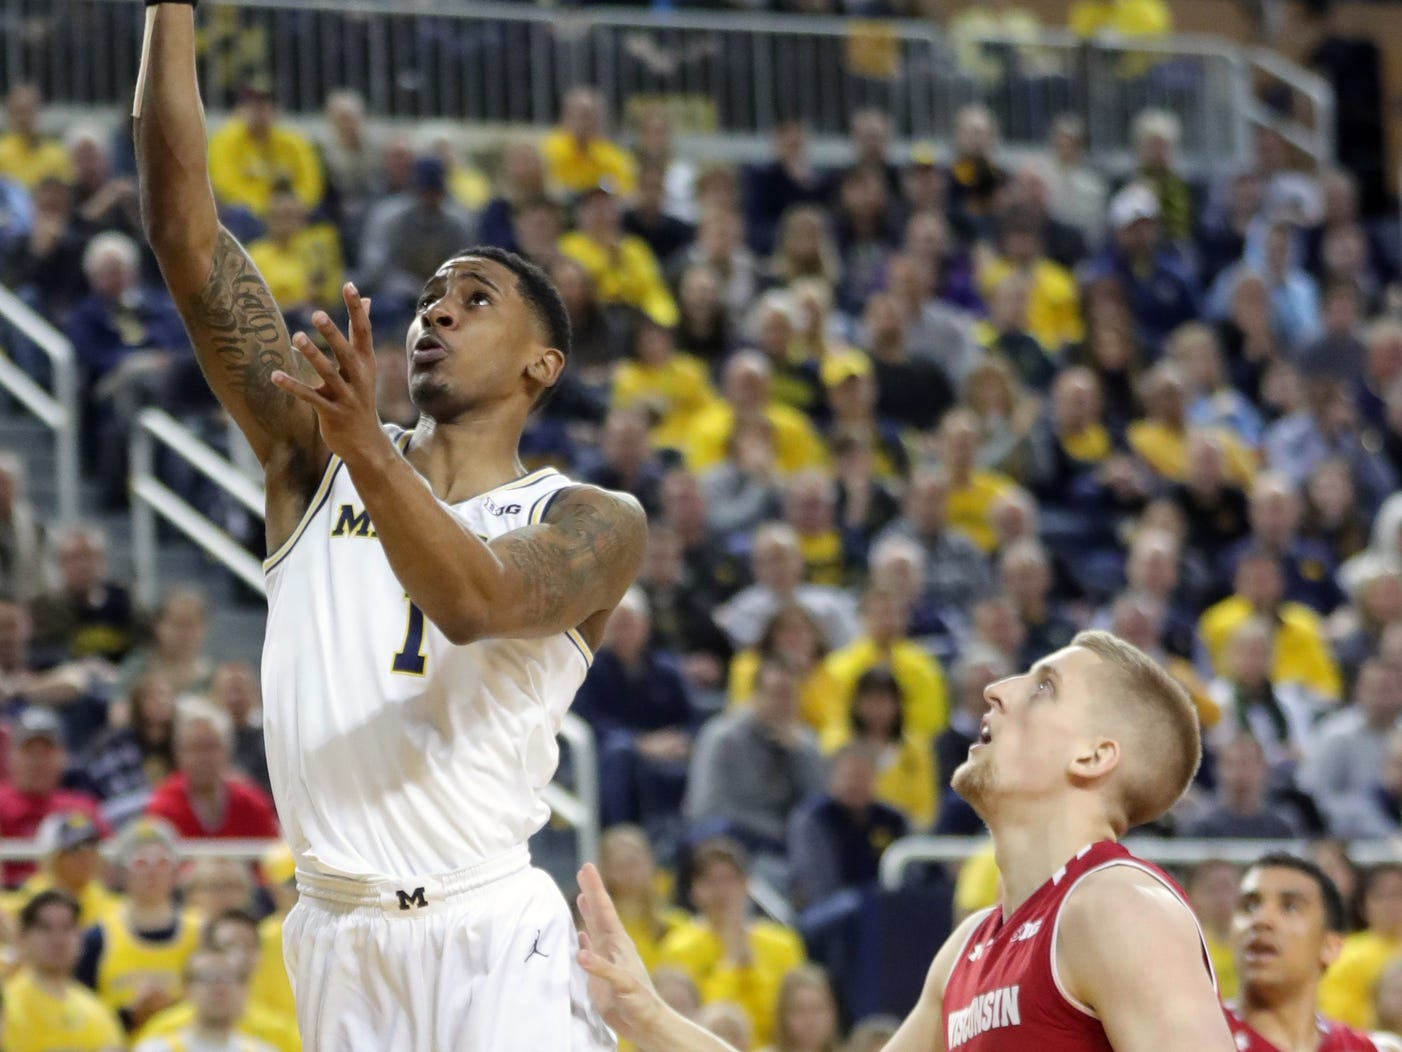 Michigan guard Charles Matthews scores against Wisconsin guard Brevin Pritzl during the second half Saturday, Feb. 9, 2019 at the Crisler Center.